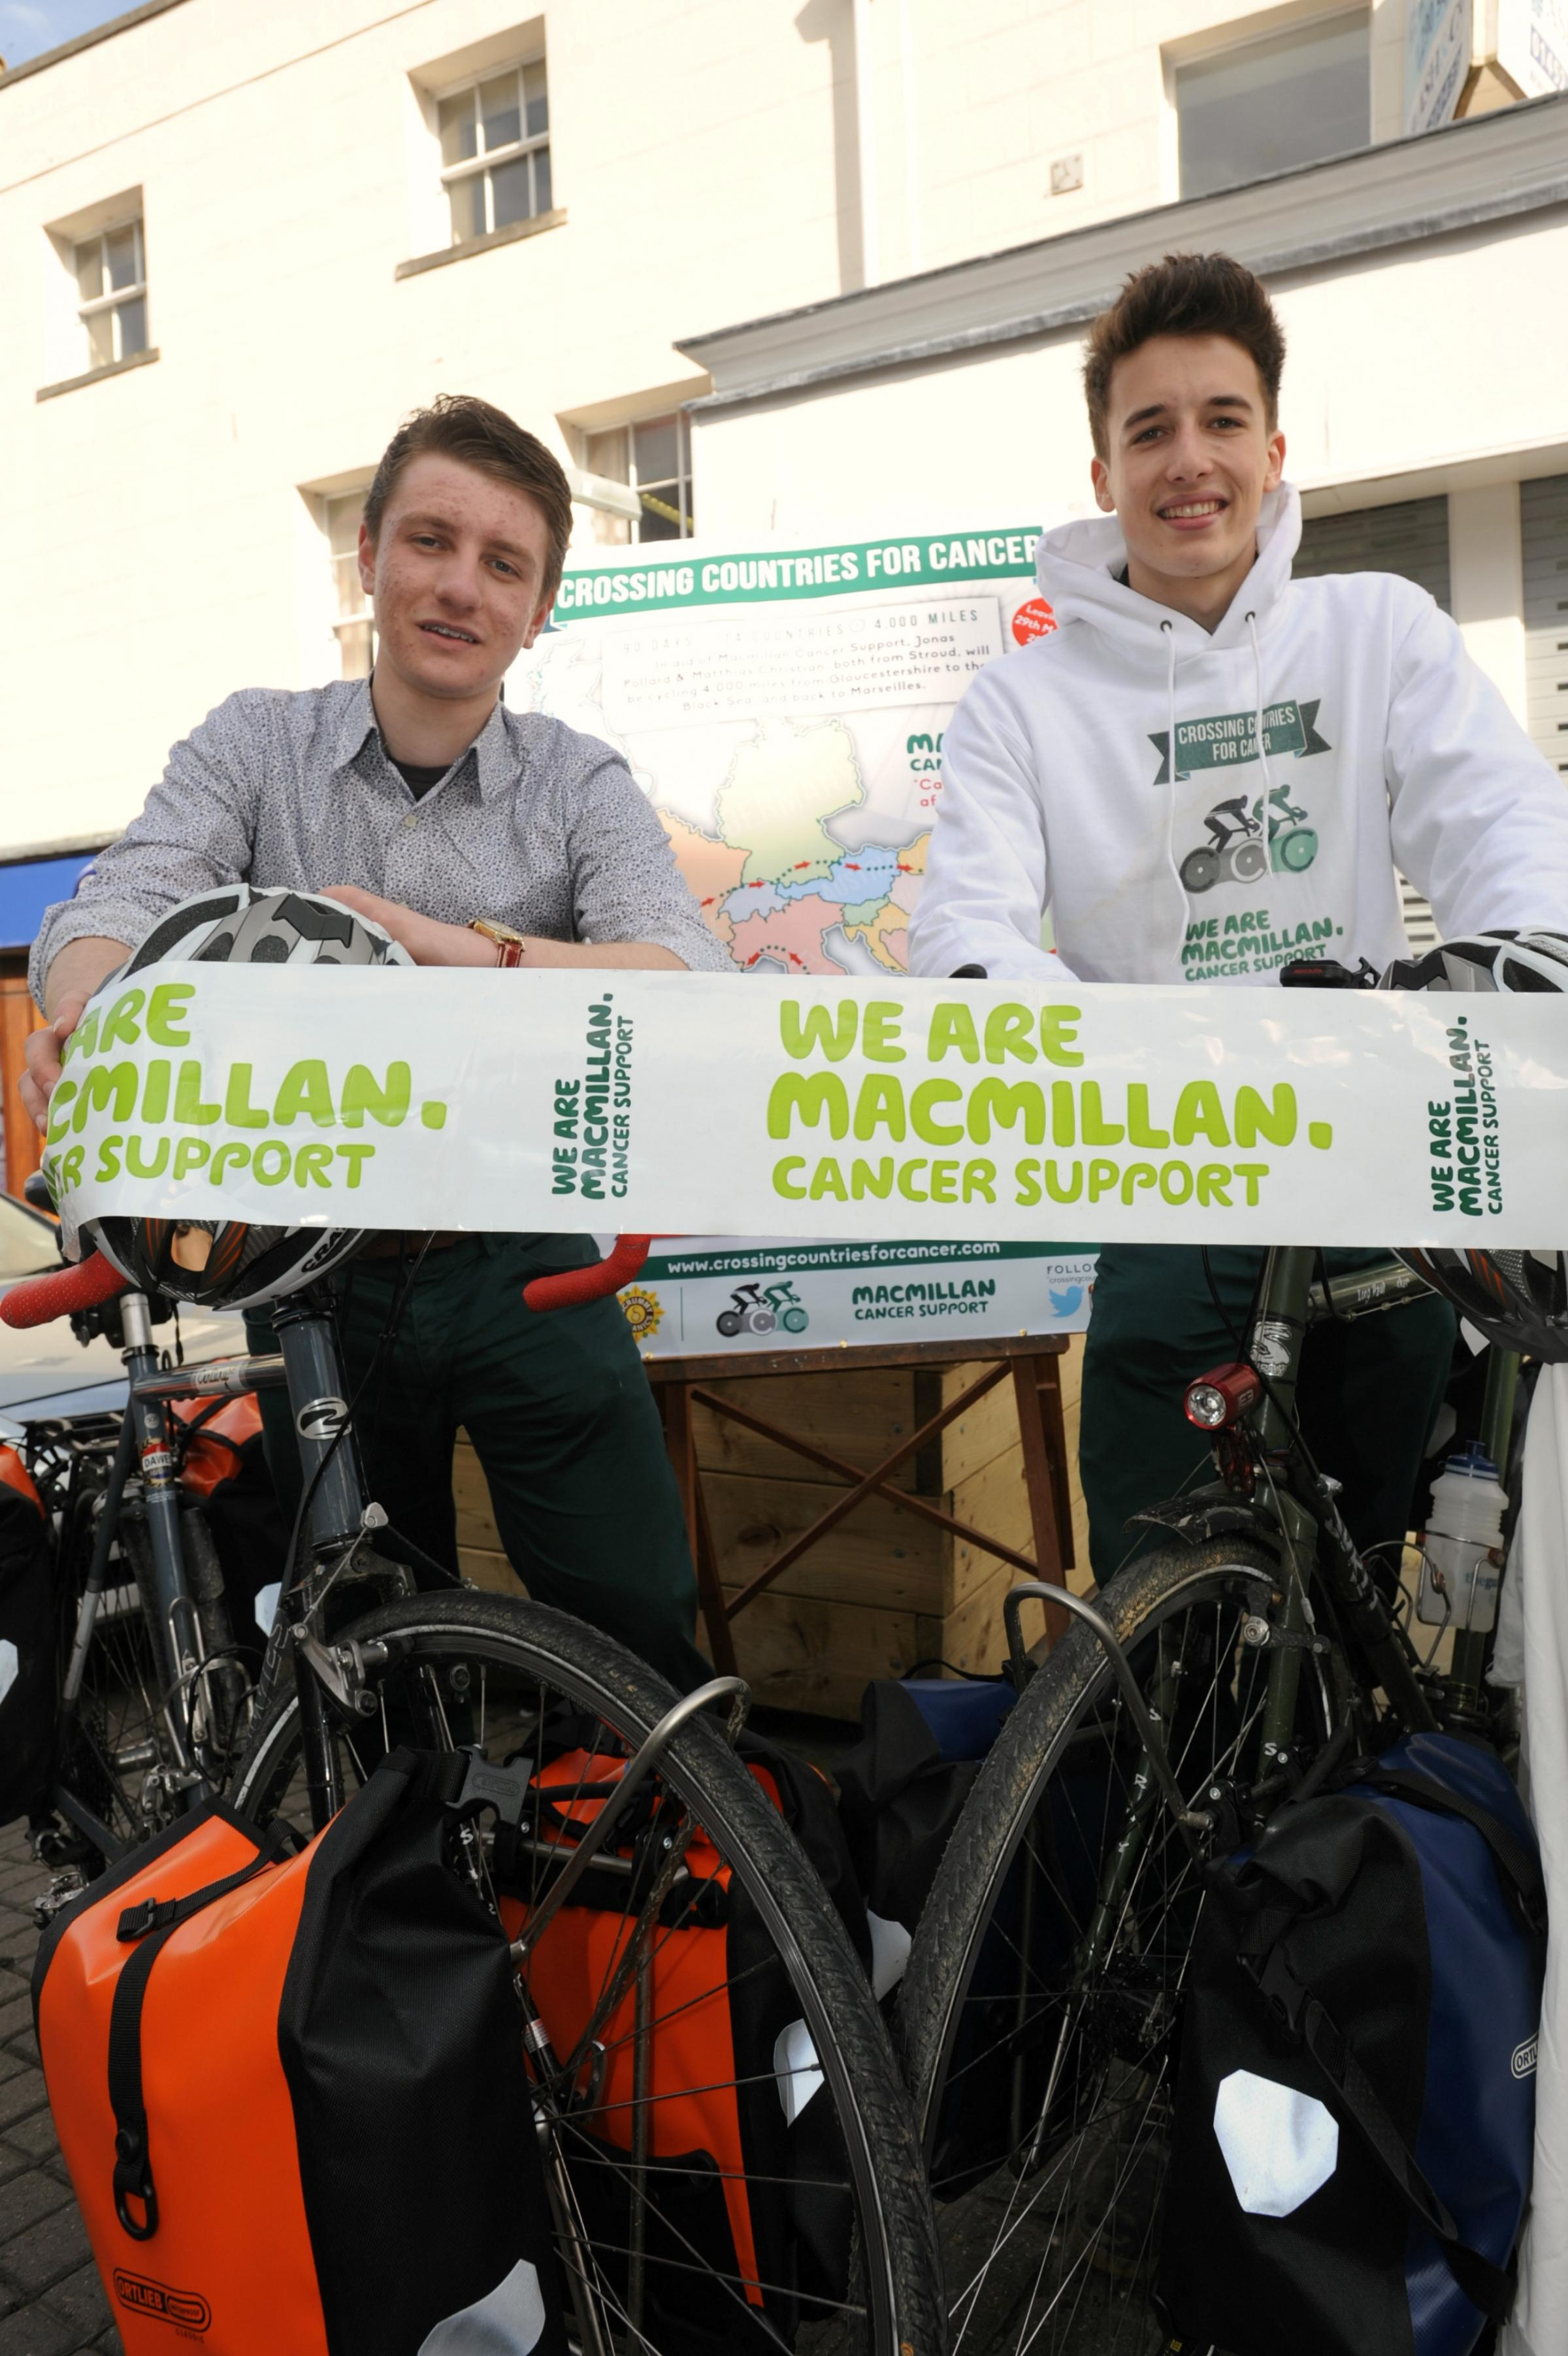 Jonas Pollard (left) and Matthias Christian, both 19, are cycling 4,000 across 14 countries to raise money for Macmillan Cancer Support. The pair are hoping to raise £10,000